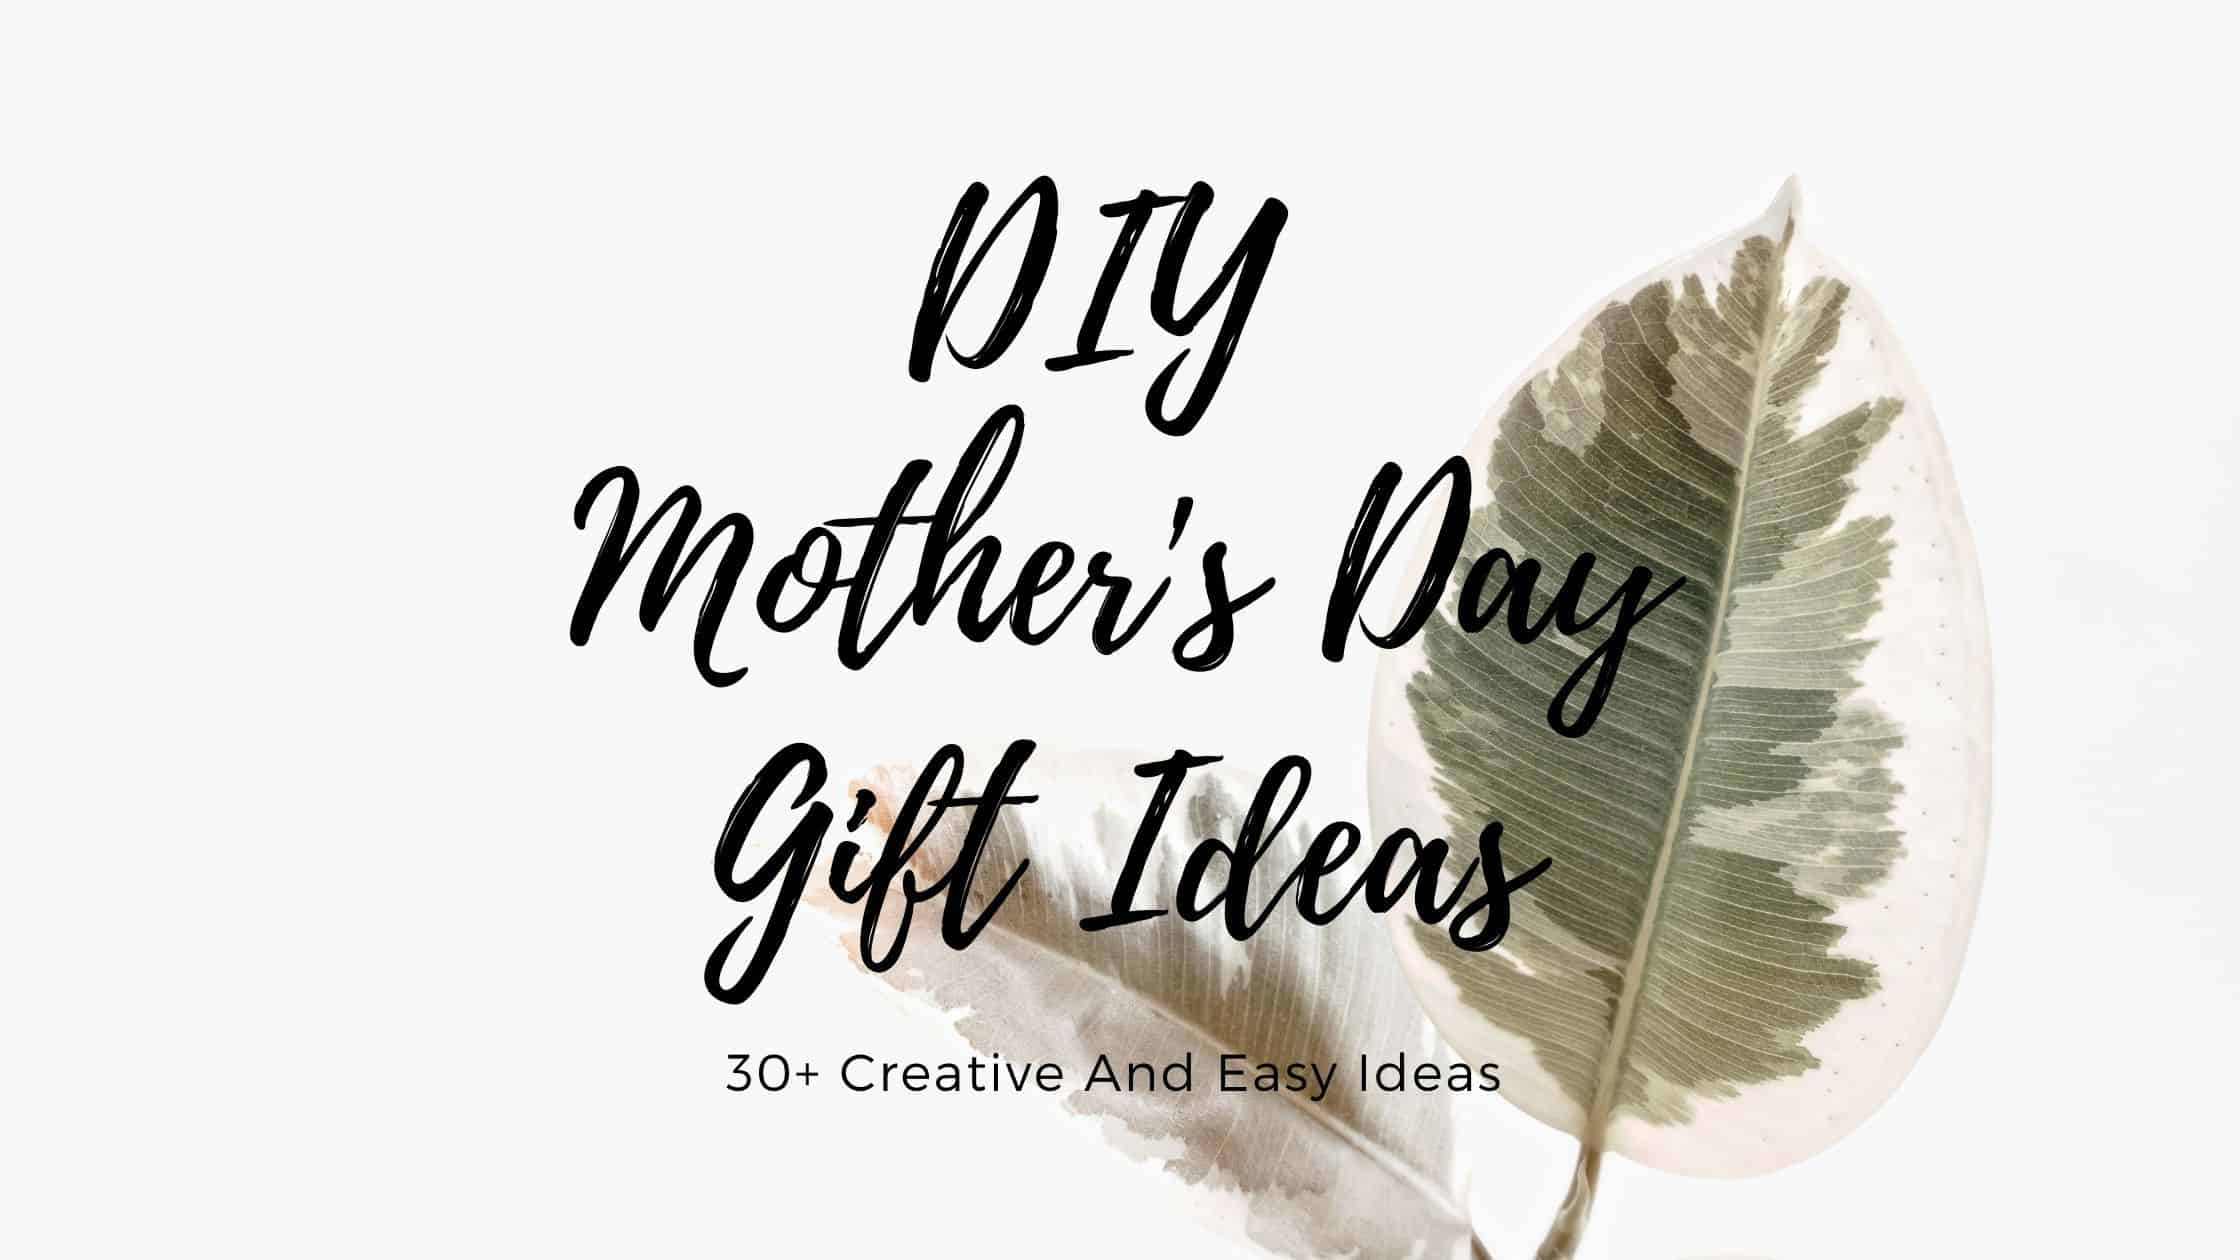 35+ Creative & Easy DIY Mother's Day Gift Ideas (2021)